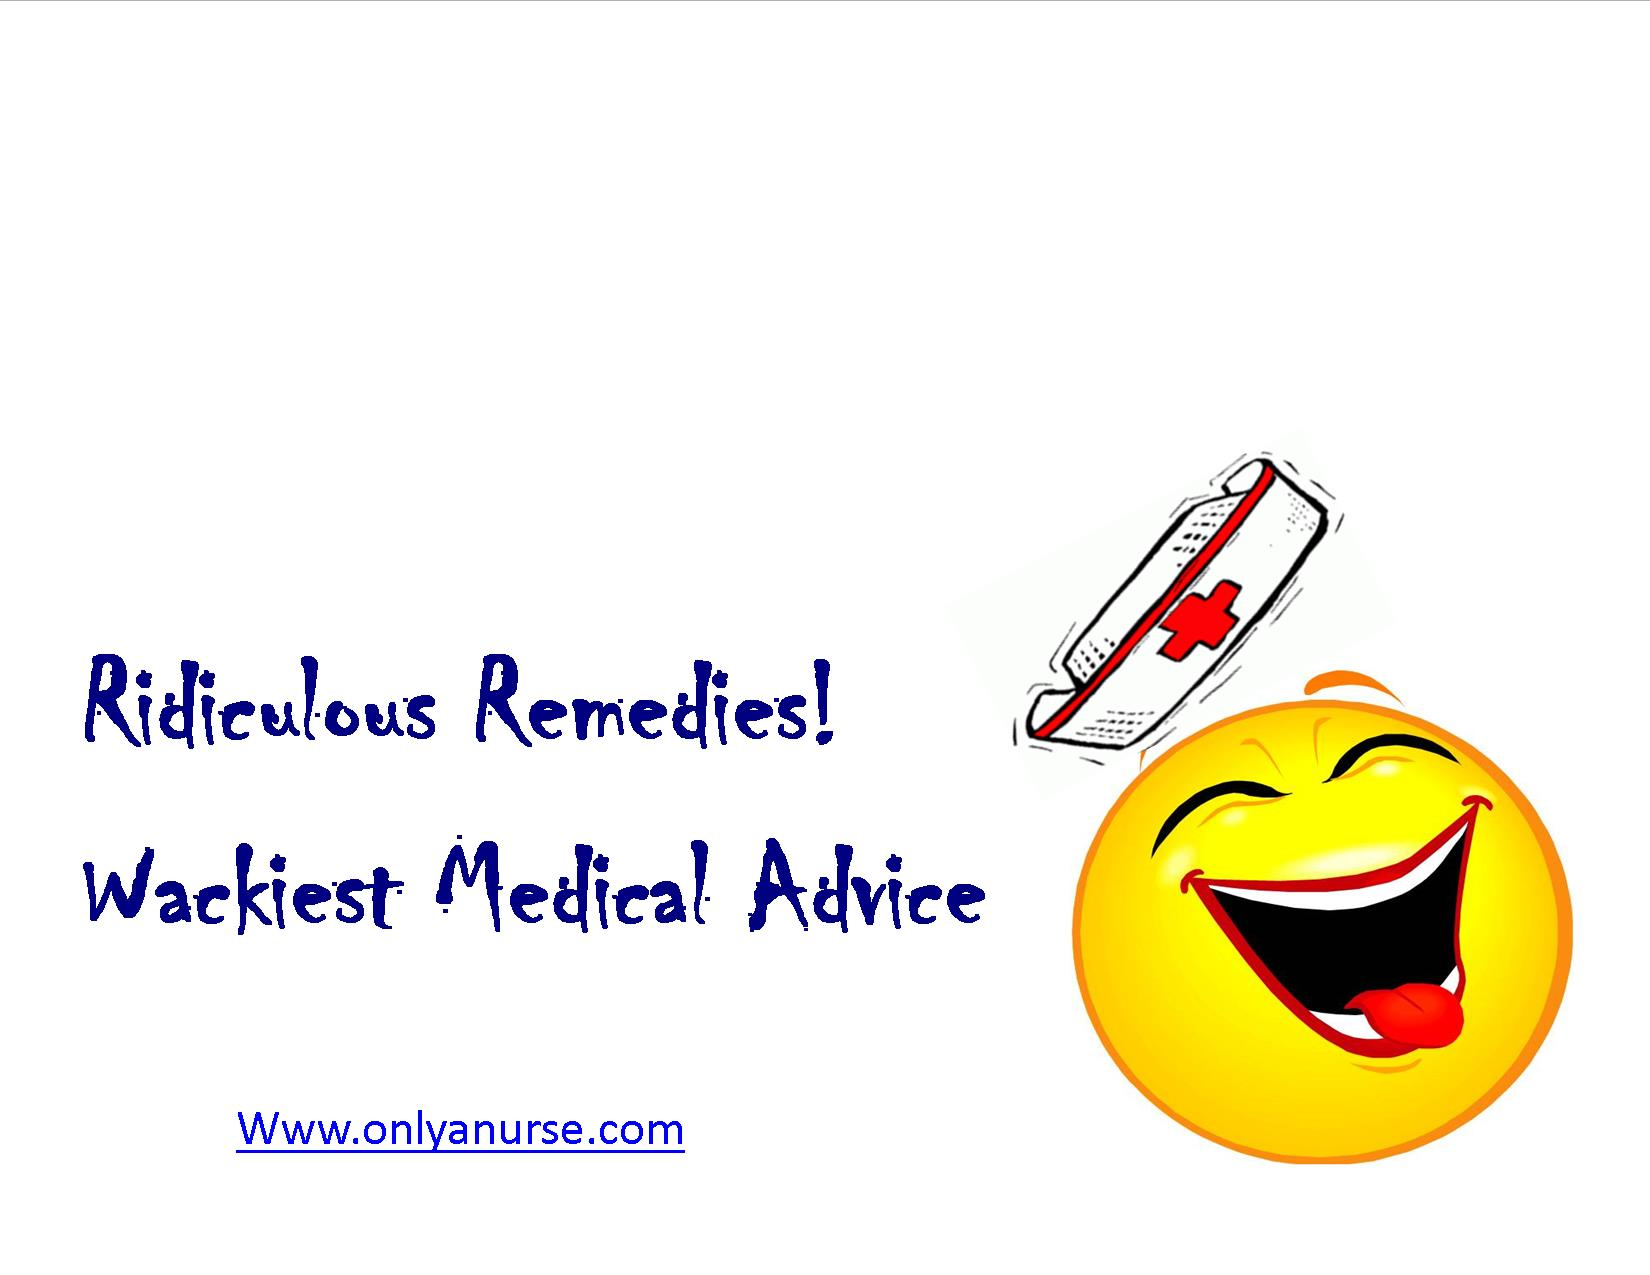 Ridiculous Remedies. What's the wackiest medical advice you've ever heard?, Onlyanurse, Onlyanurse.com